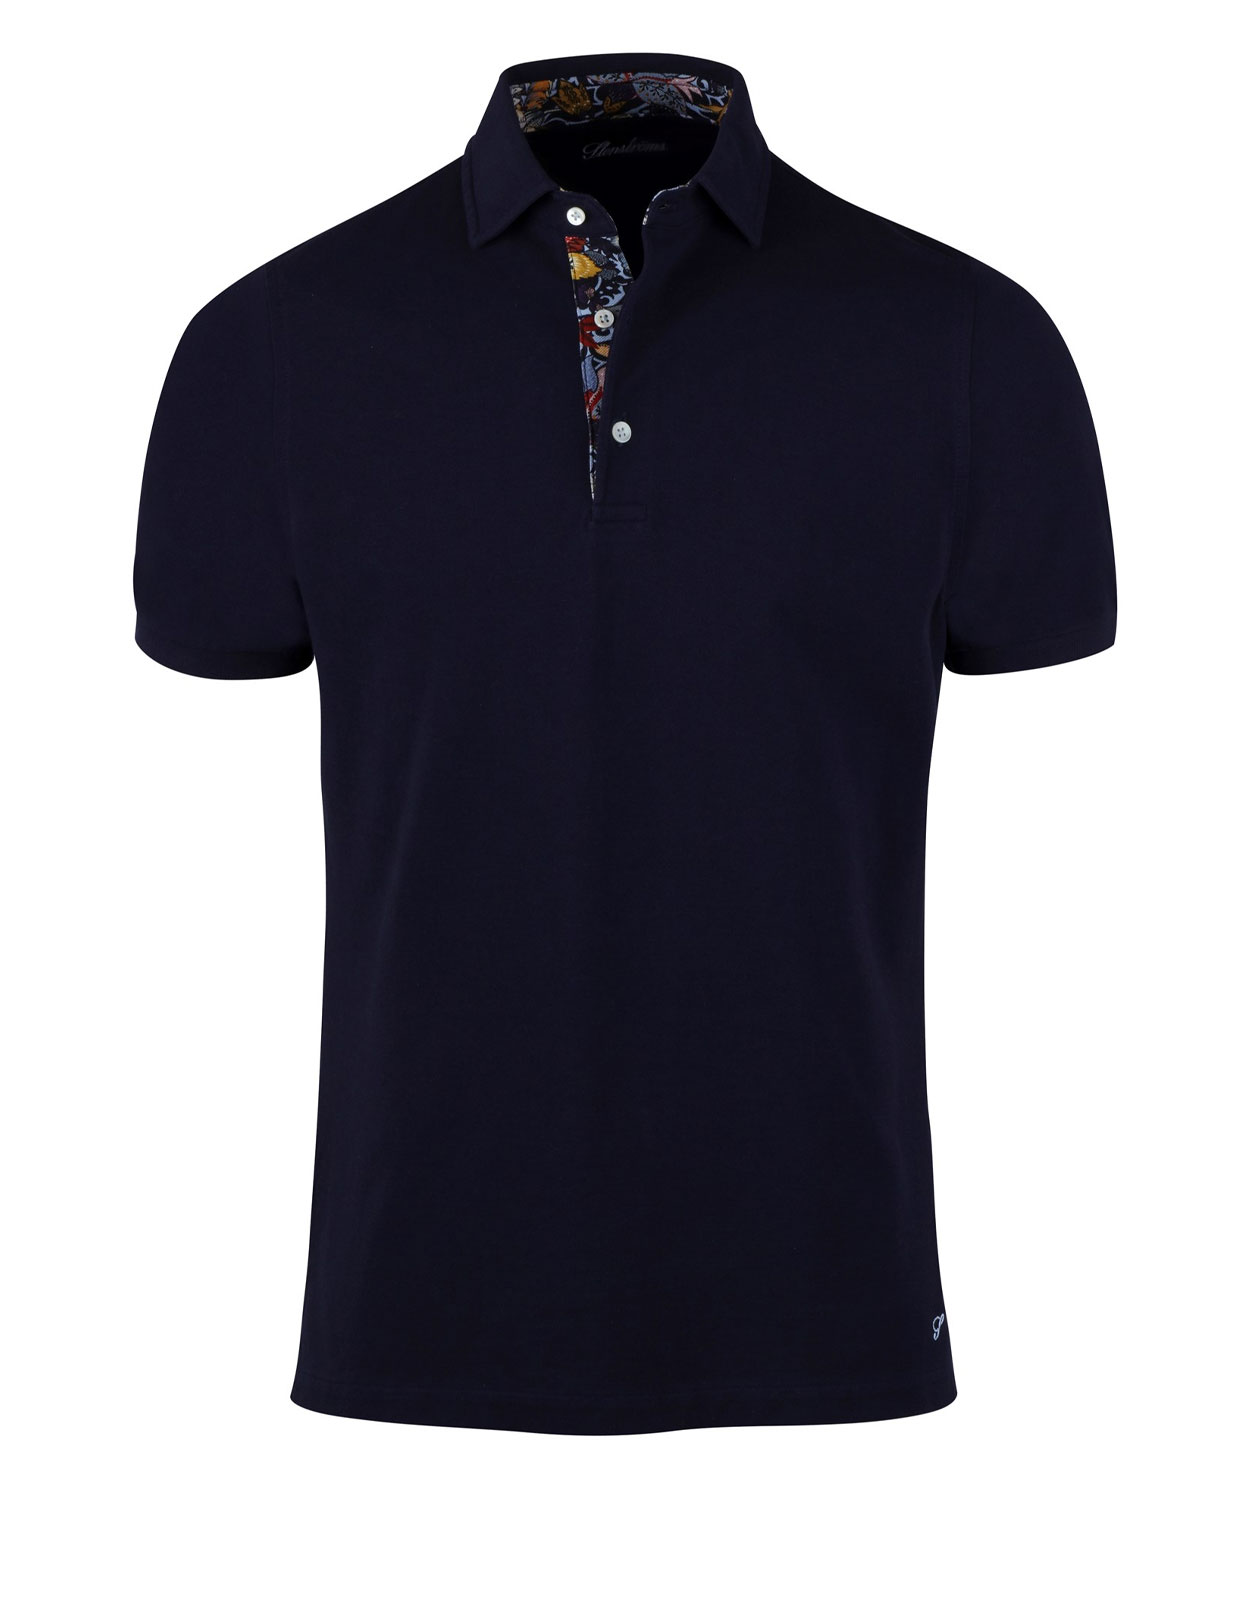 Polo Shirt Cotton Contrast Navy